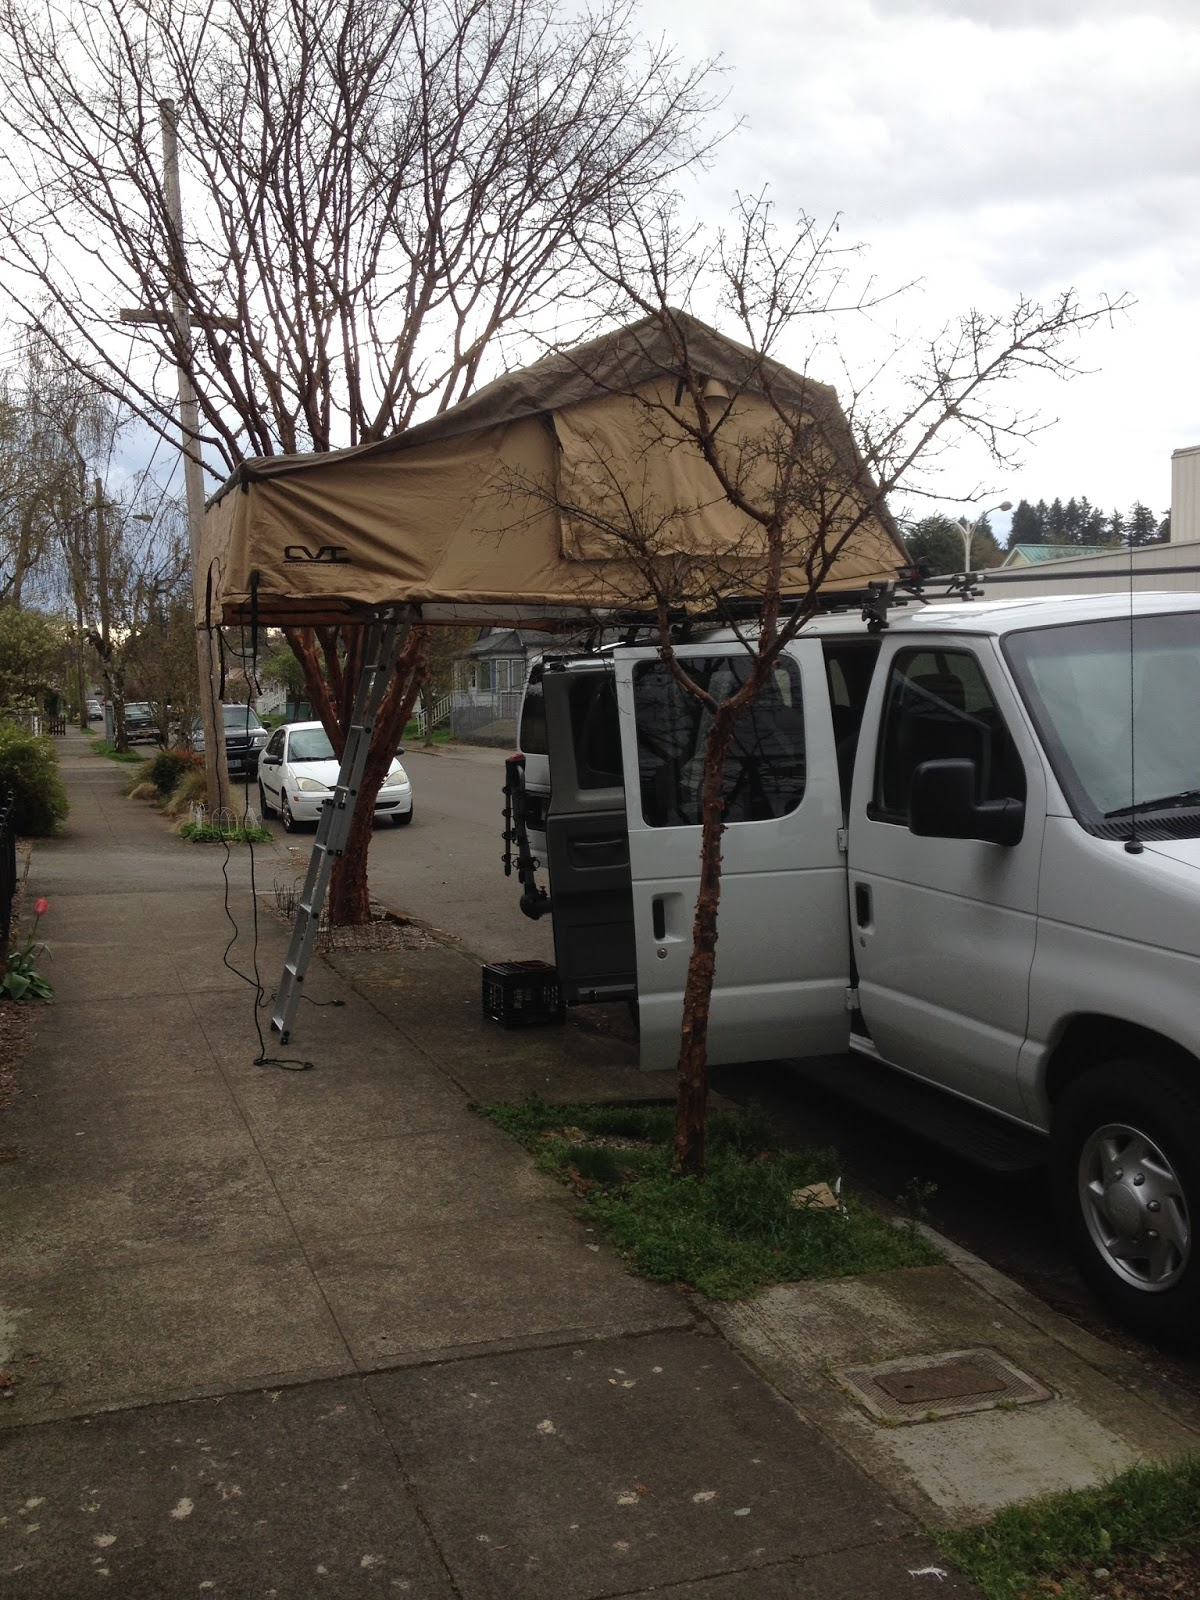 Craigslist Roof Top Tent Amp Full Size Of C Amp Ing Tentused